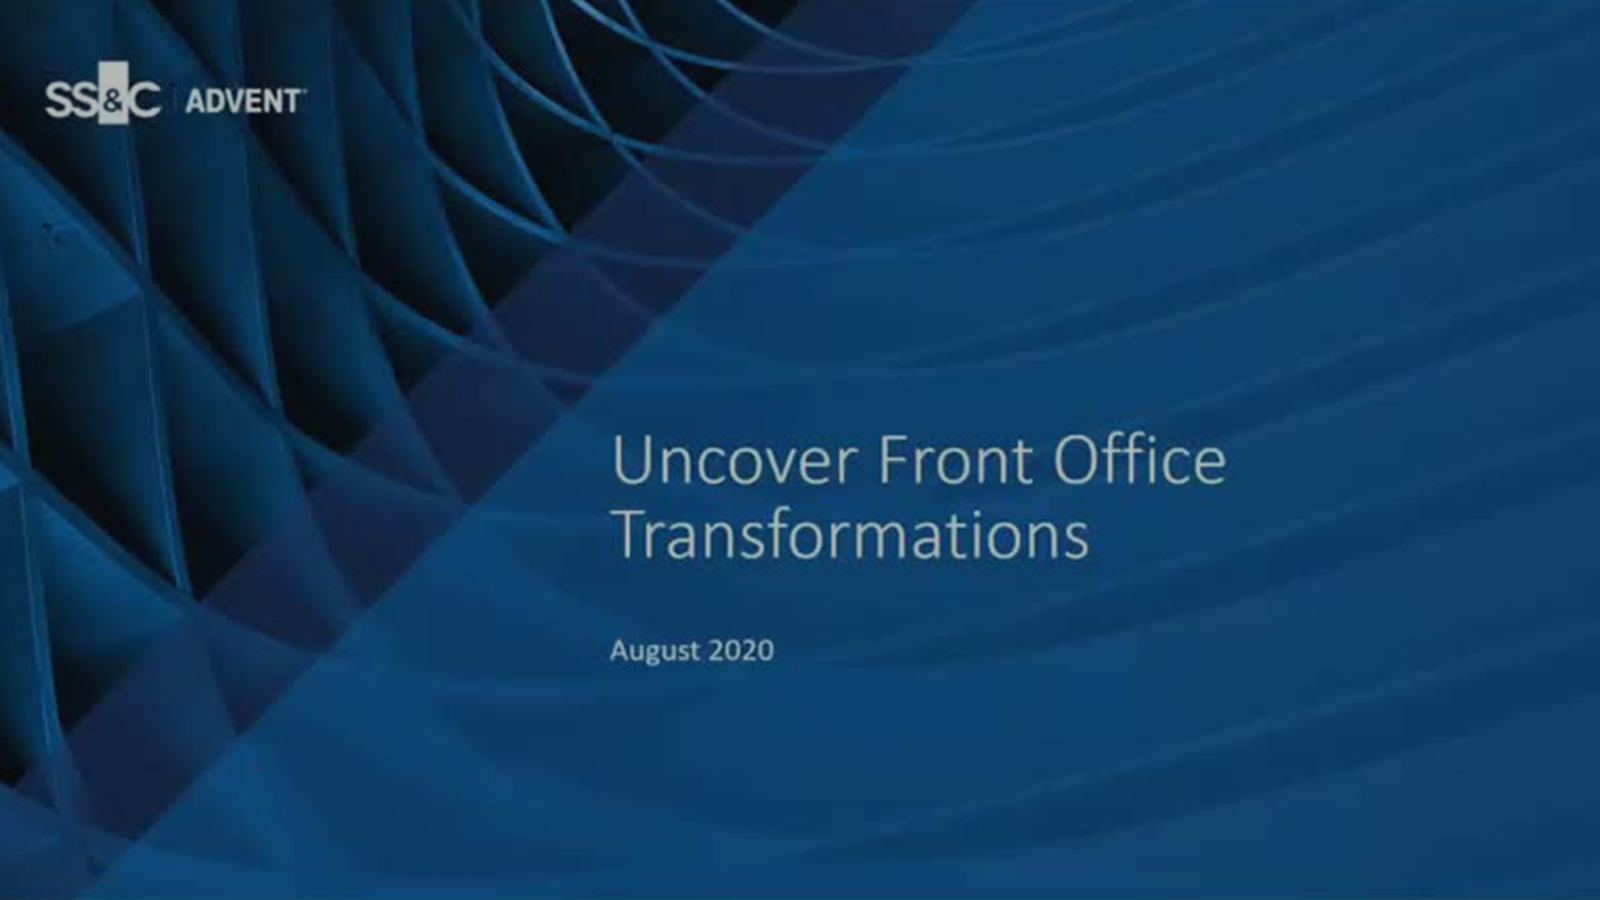 poster image for Uncover Front Office Transformations